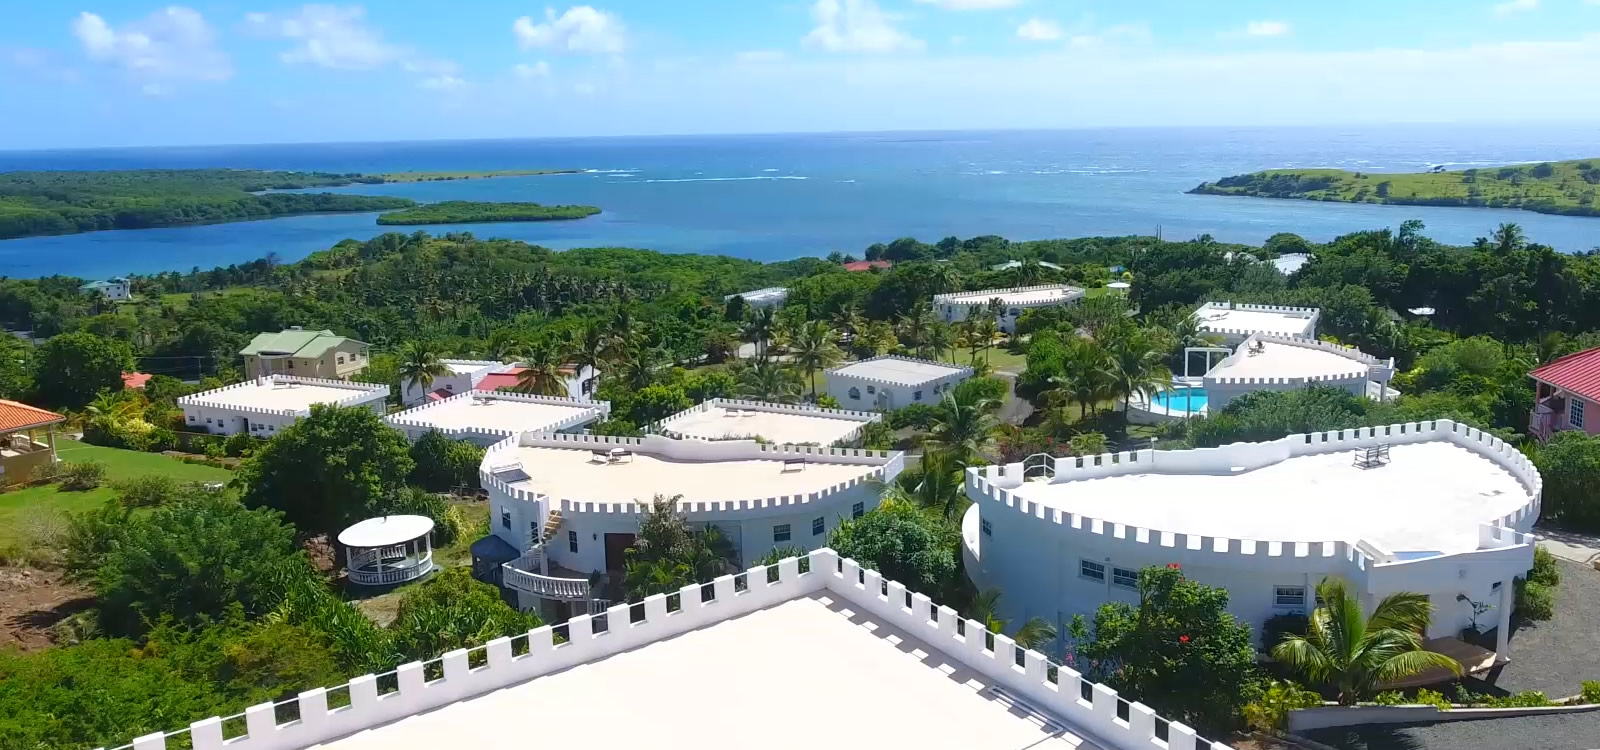 Castles in Paradise, Savannes Bay, St Lucia - Aerial View